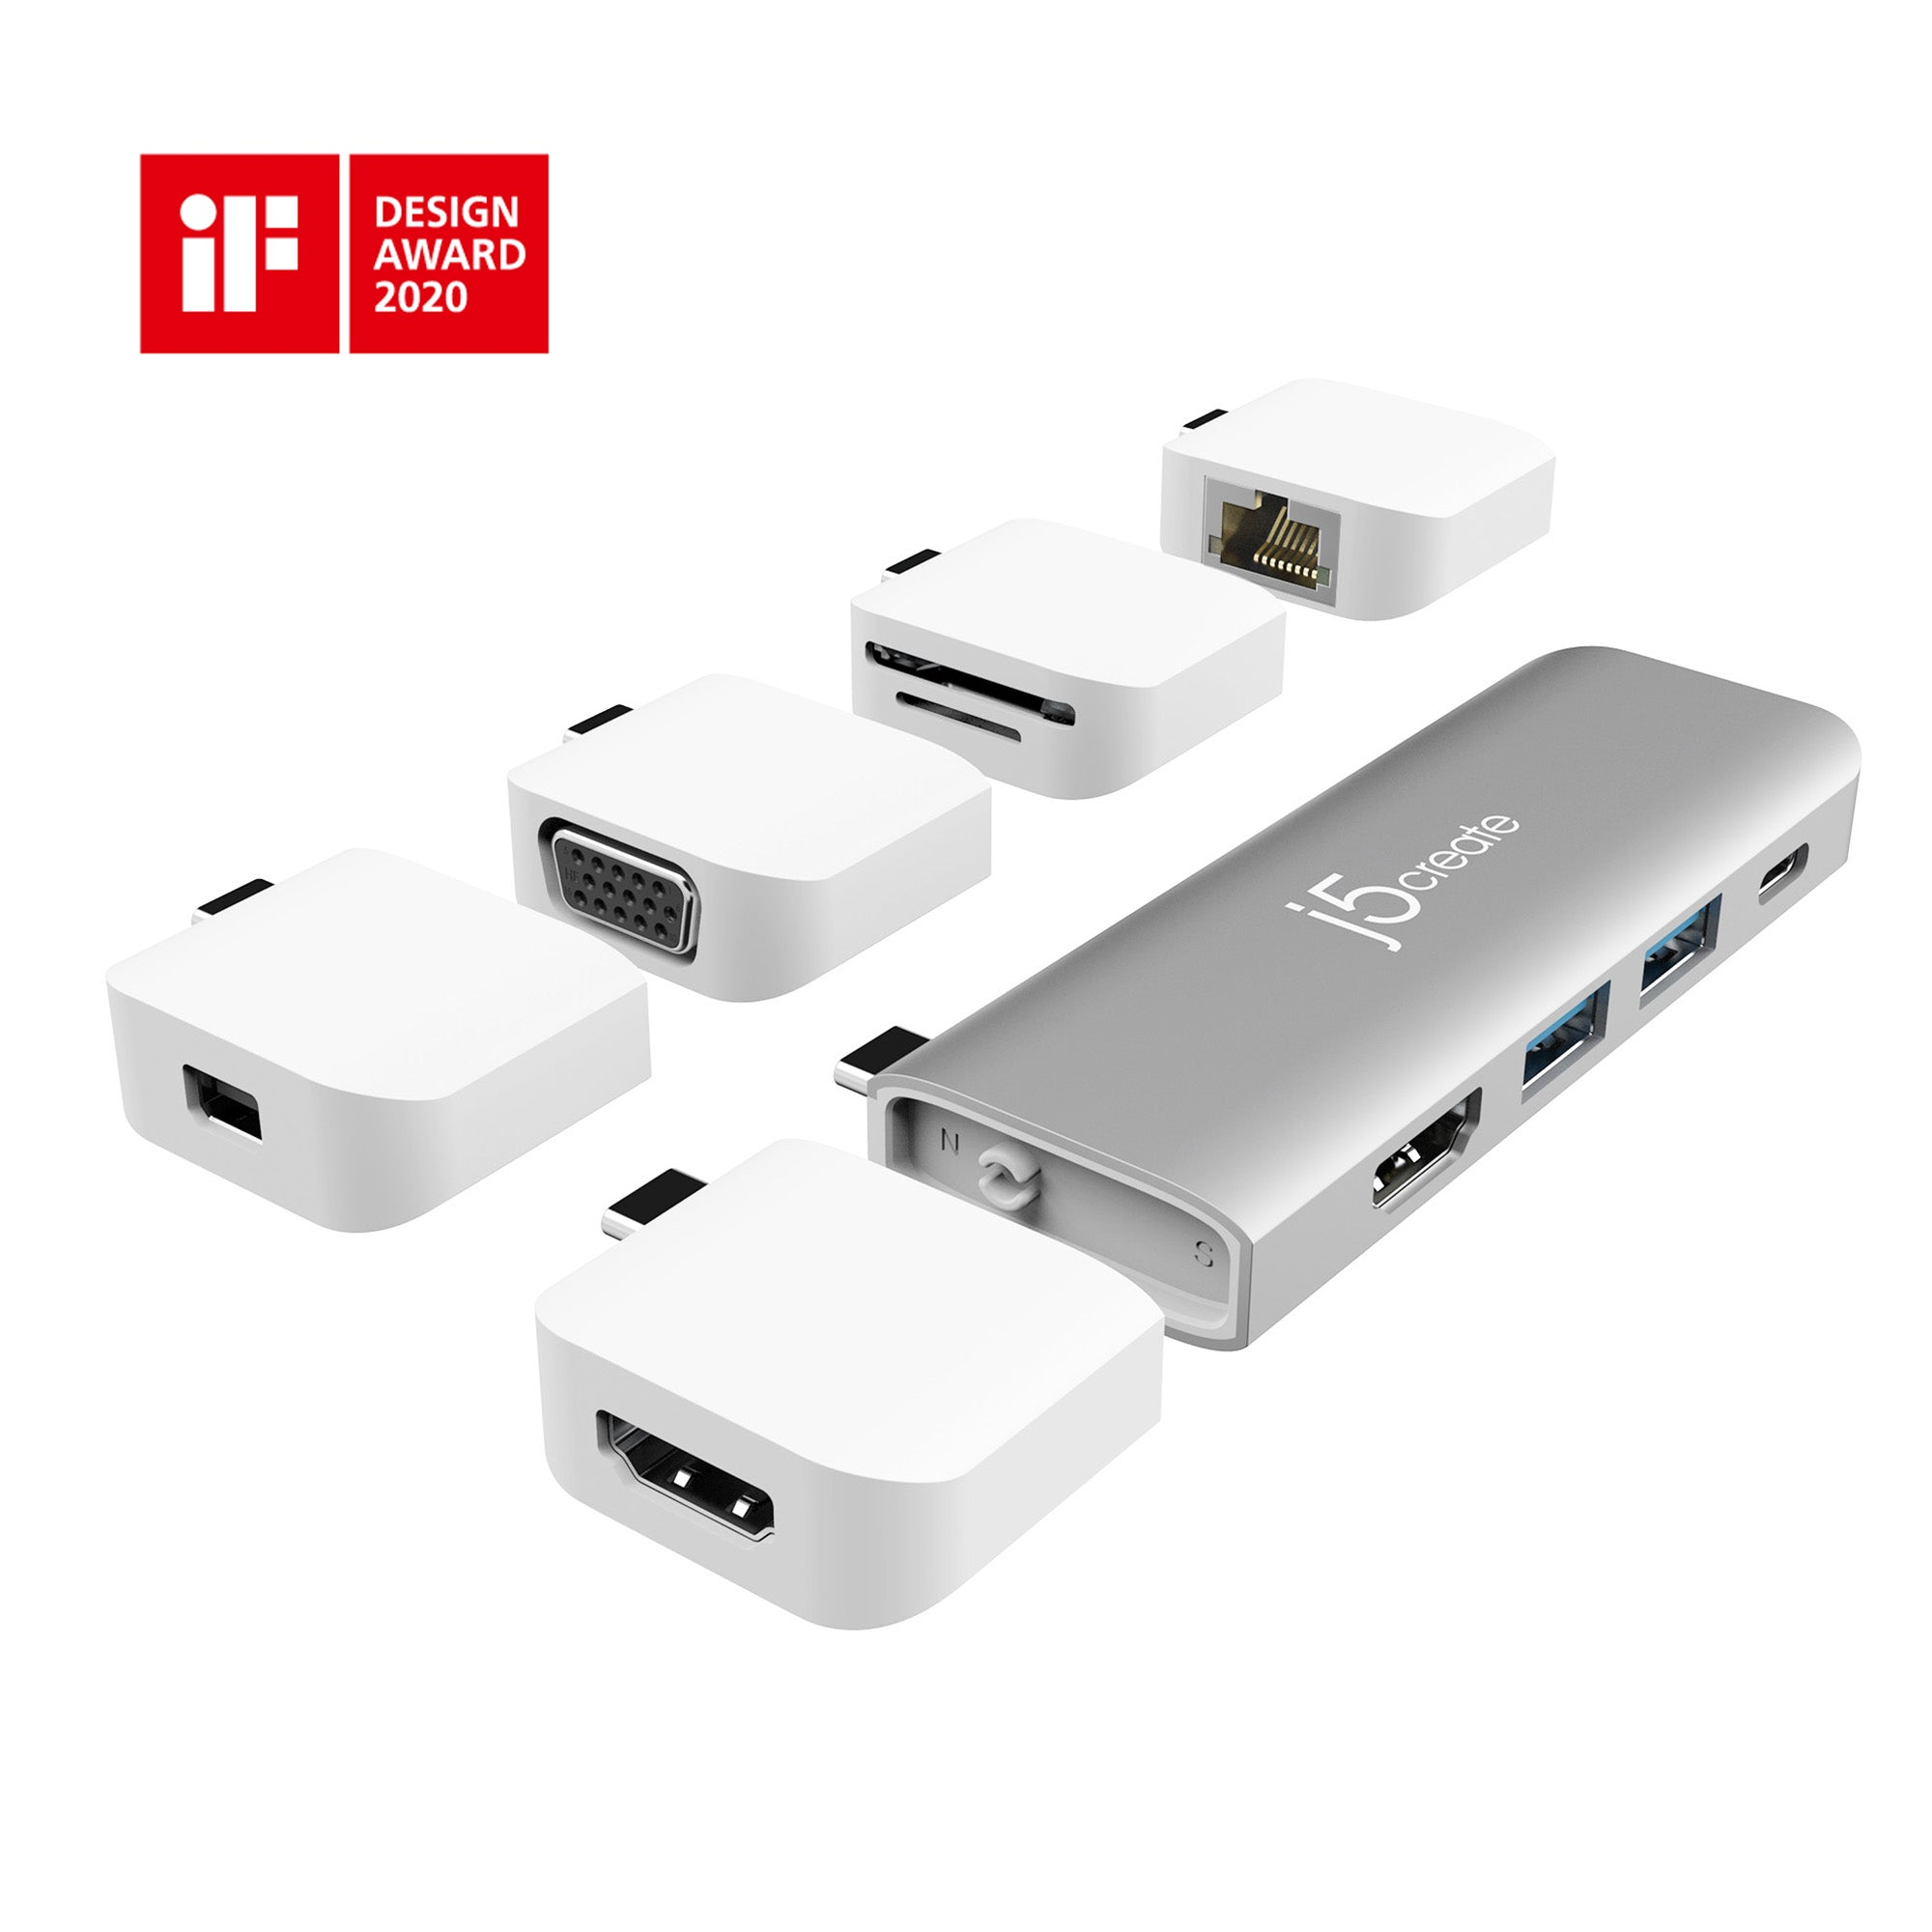 JCD389 ULTRADRIVE Kit USB-C™ Multi-Display Modular Dock